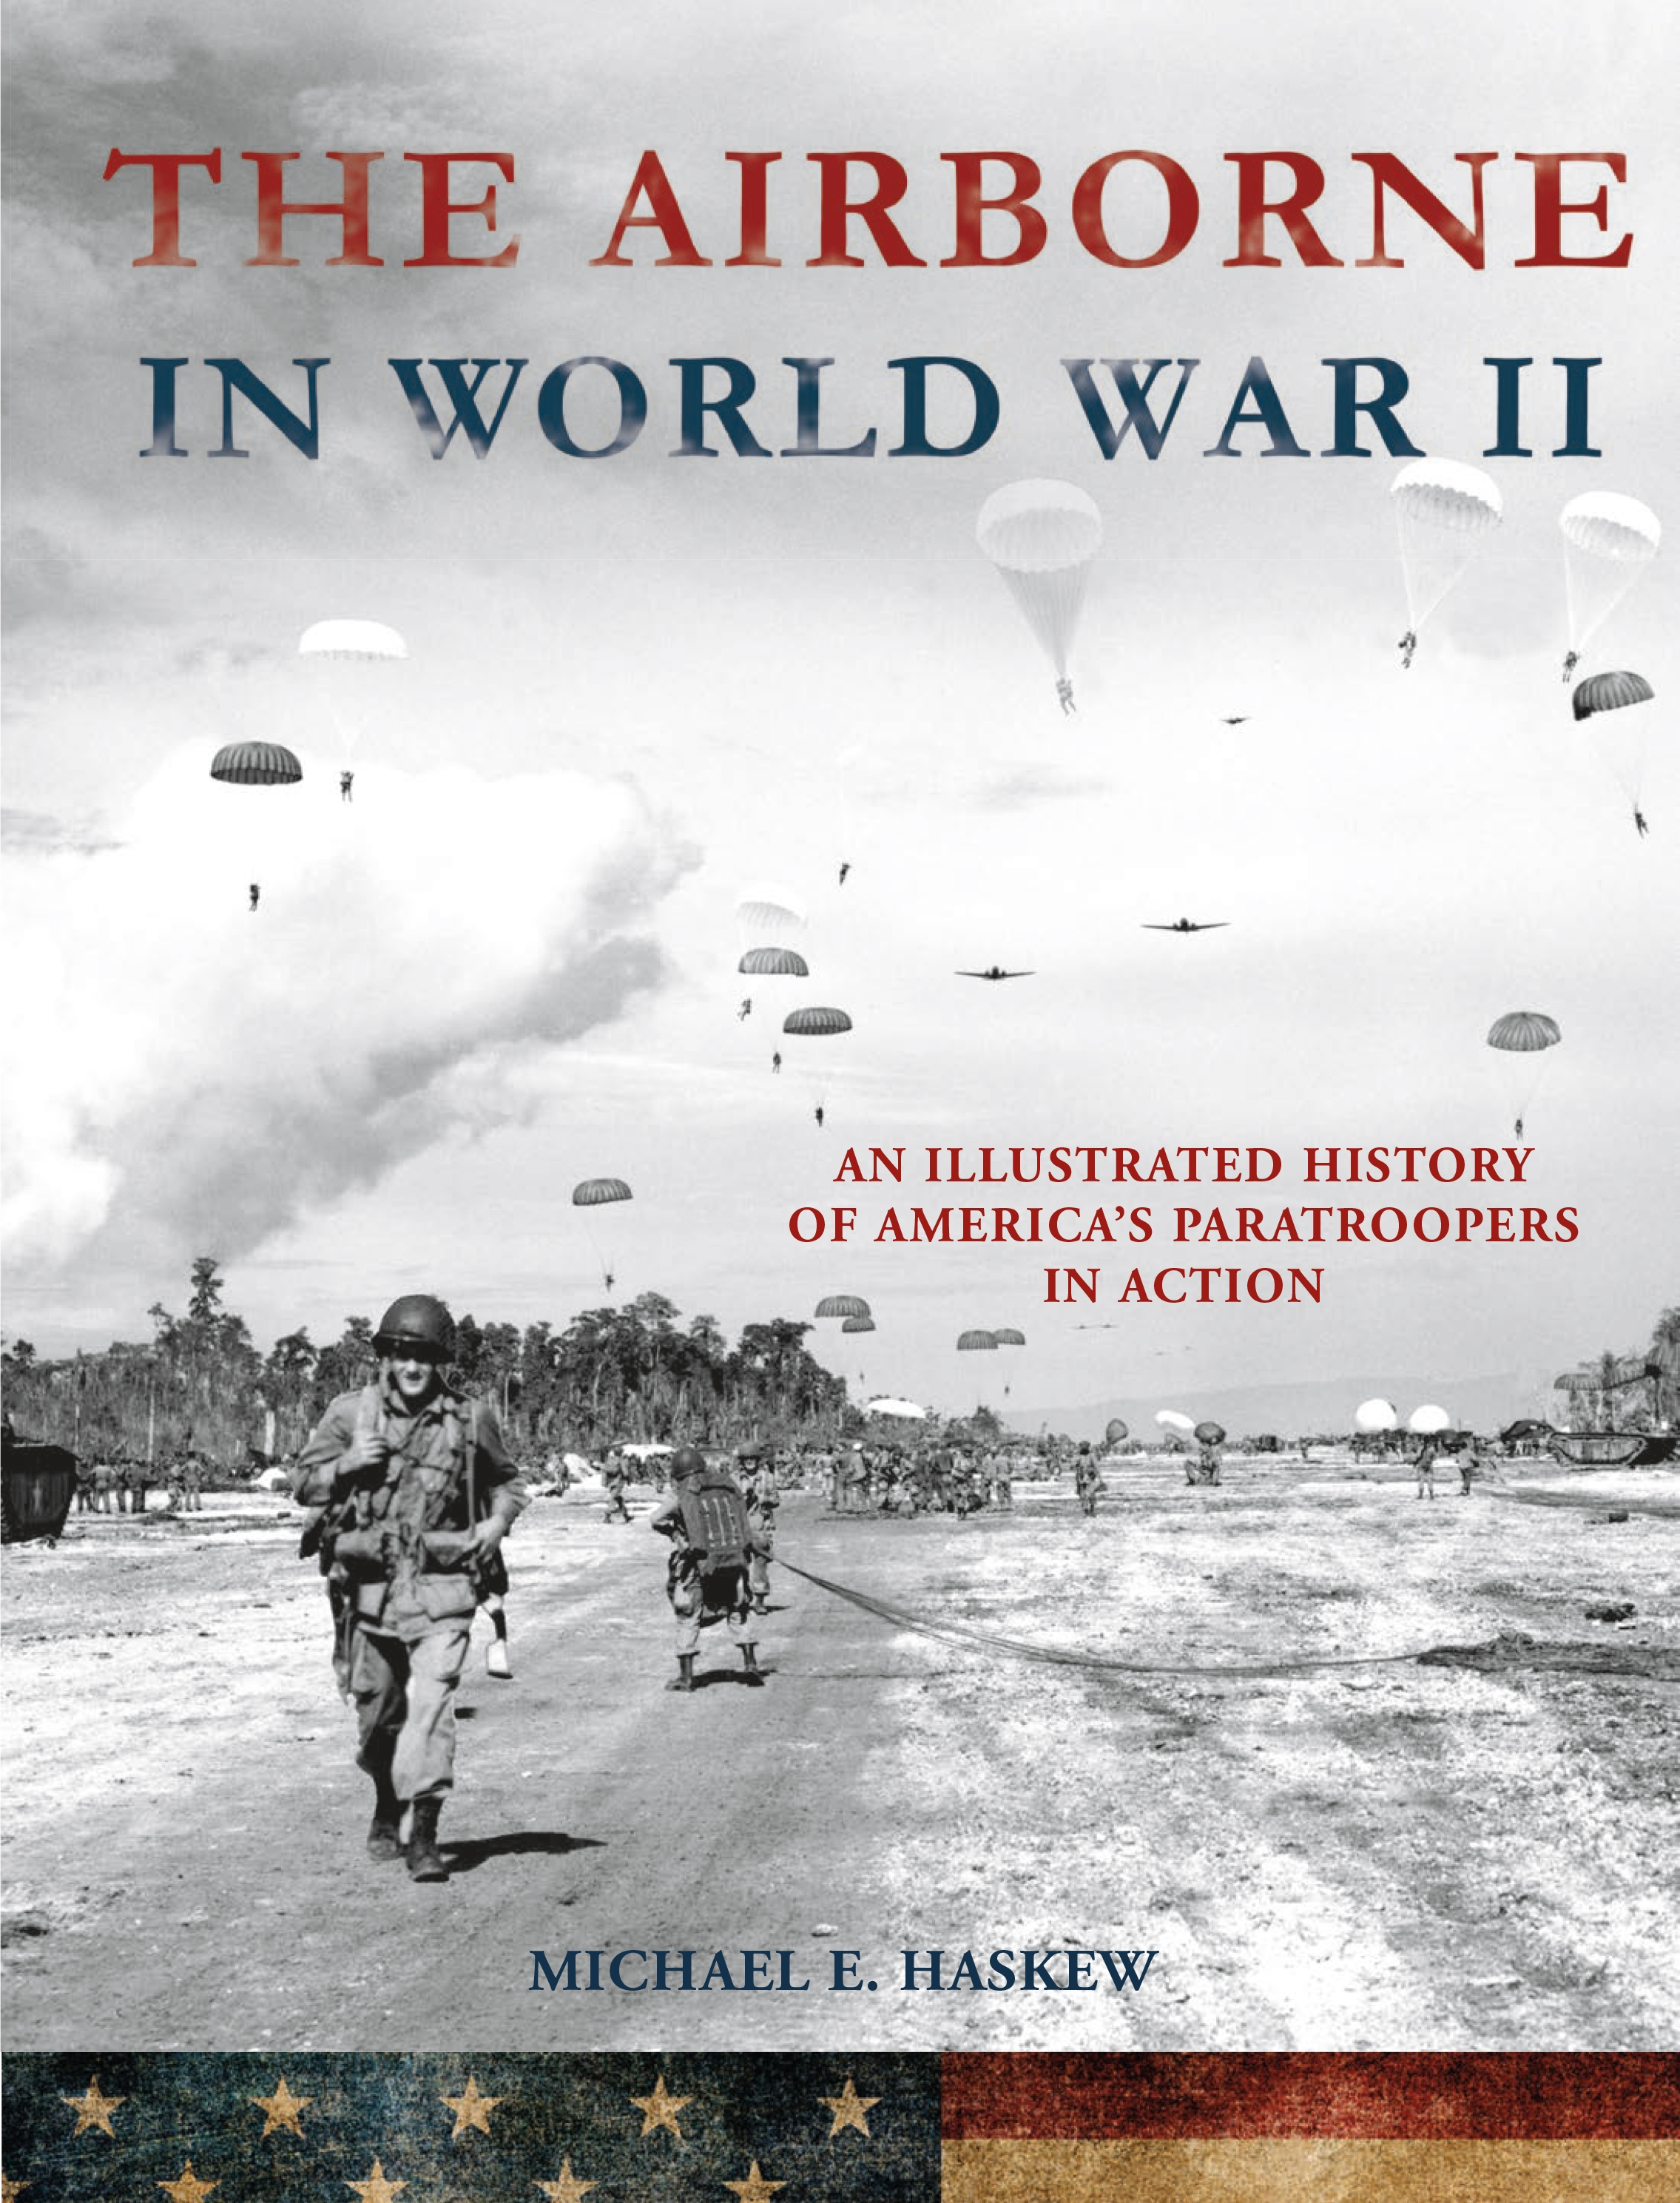 The Airborne in World War II An Illustrated History of America's Paratroopers in Action